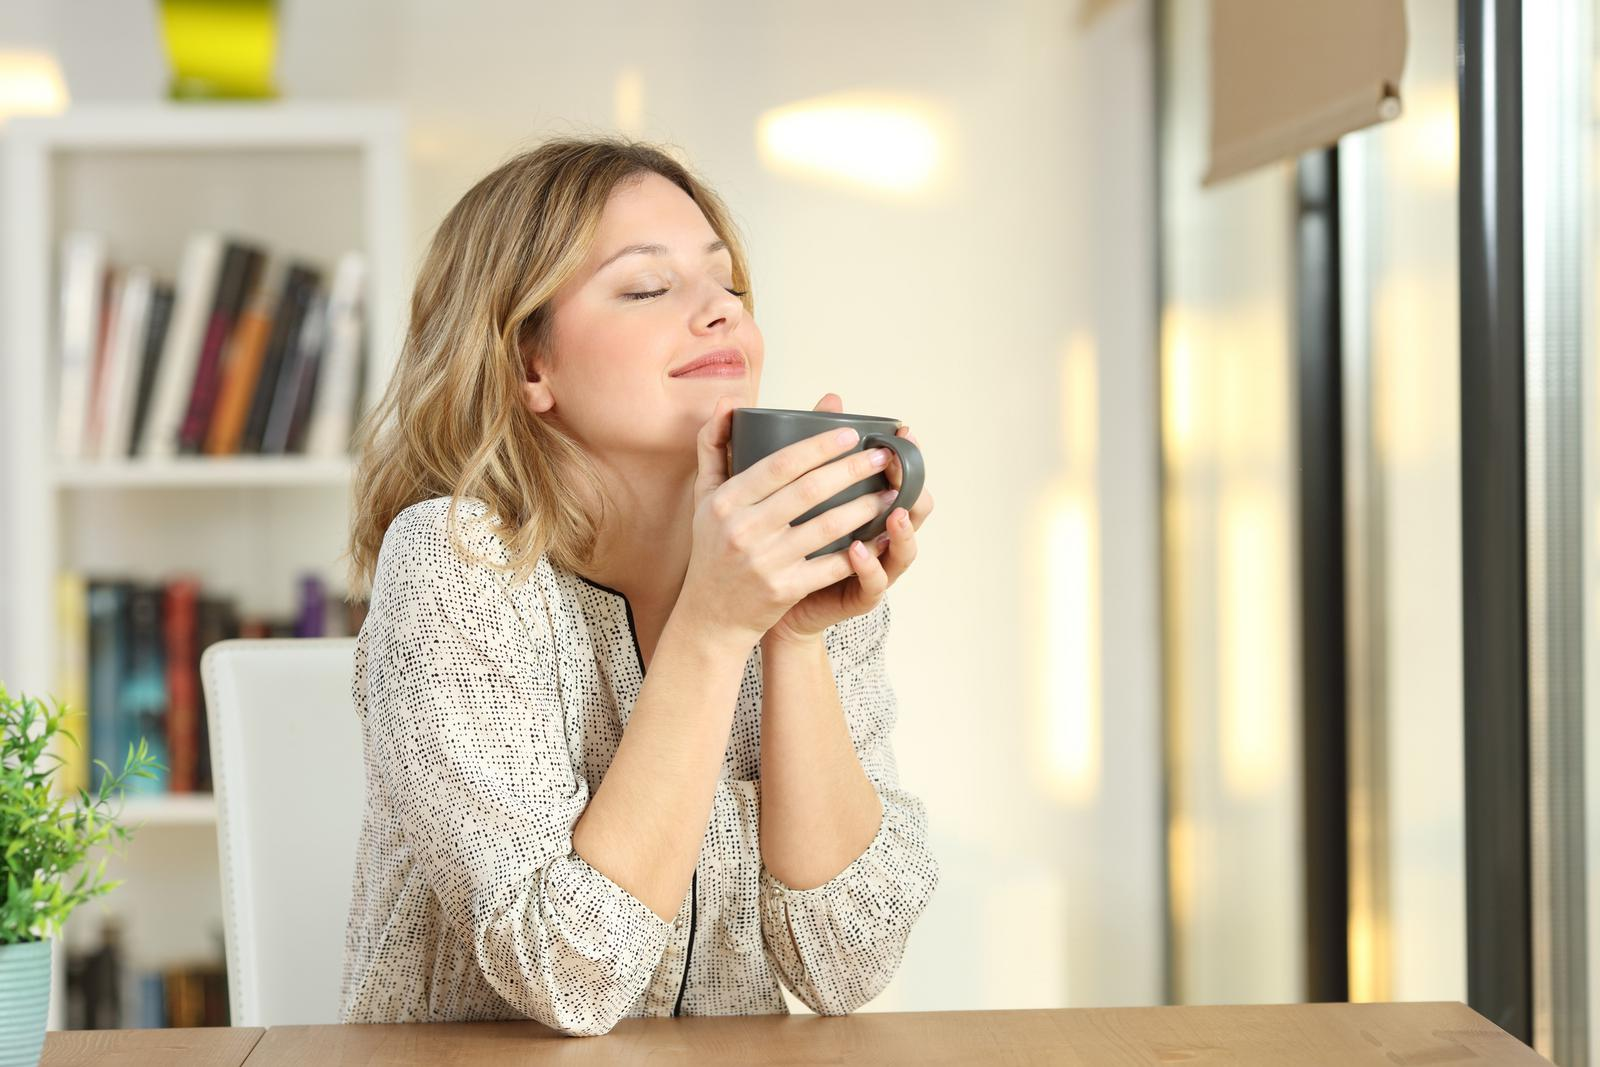 Woman with clear skin drinking coffee